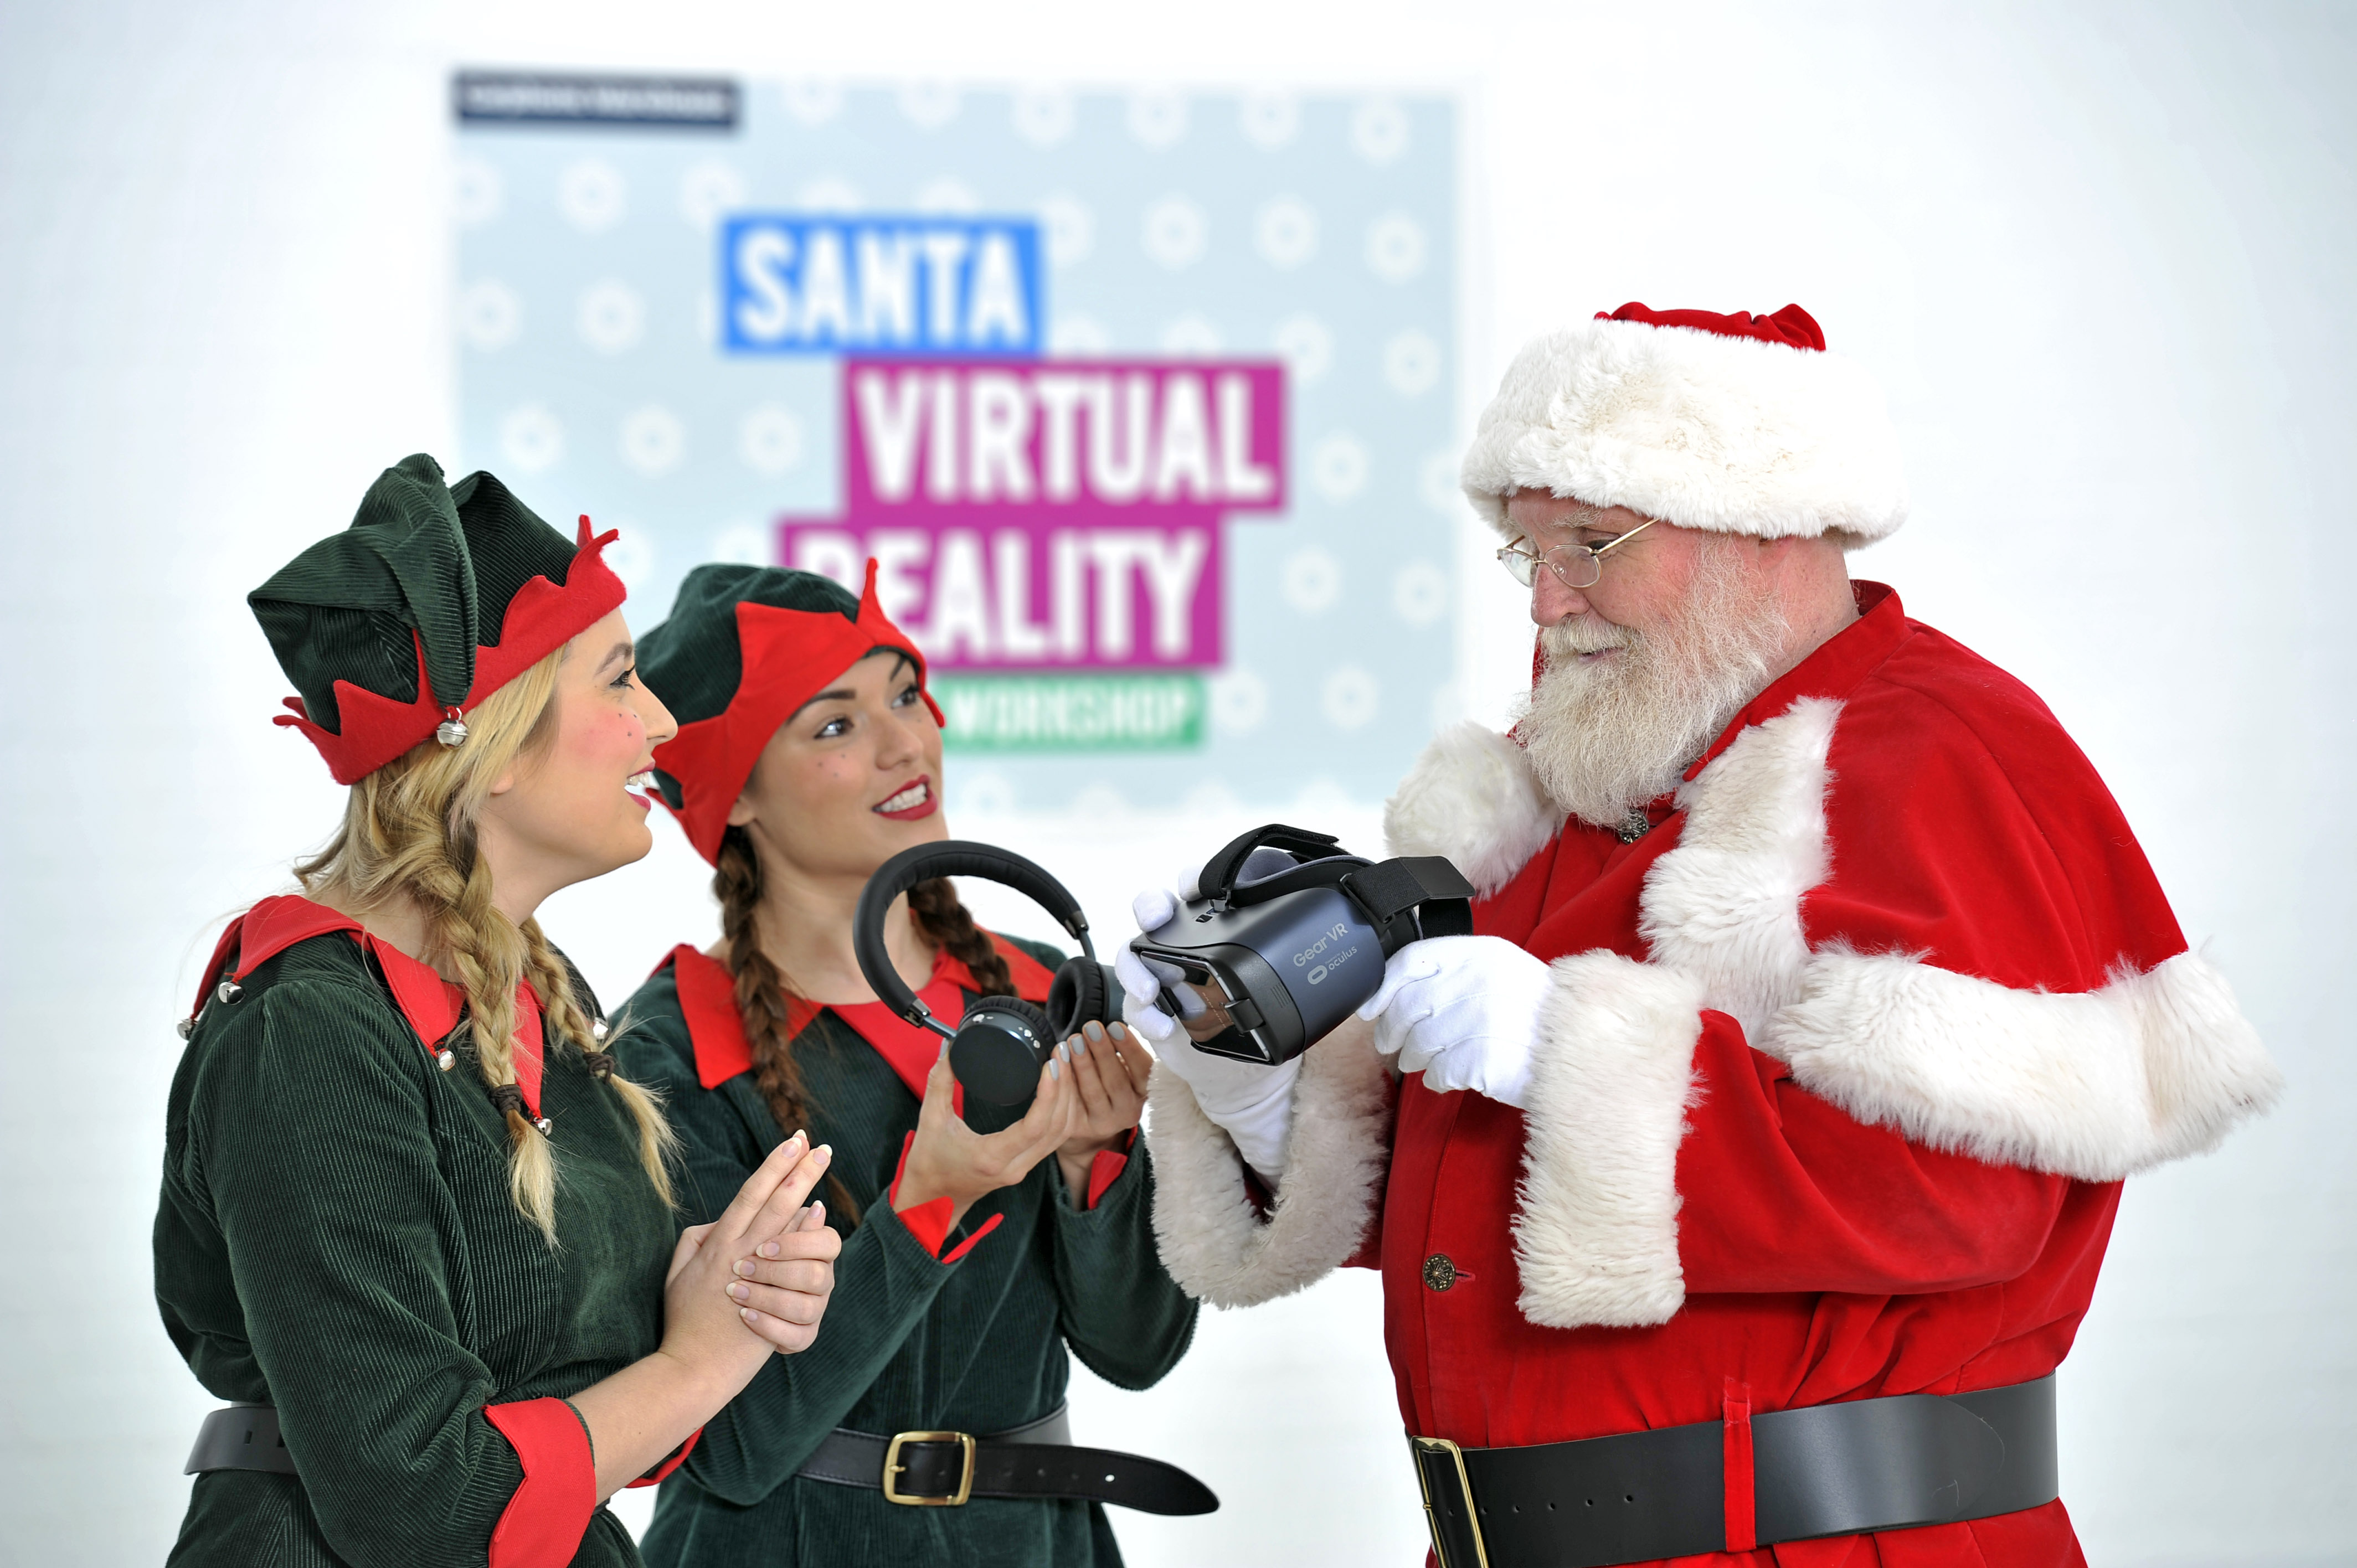 A red-suited Father Christmas studies a virtual reality headset, guided by two elf helpers.